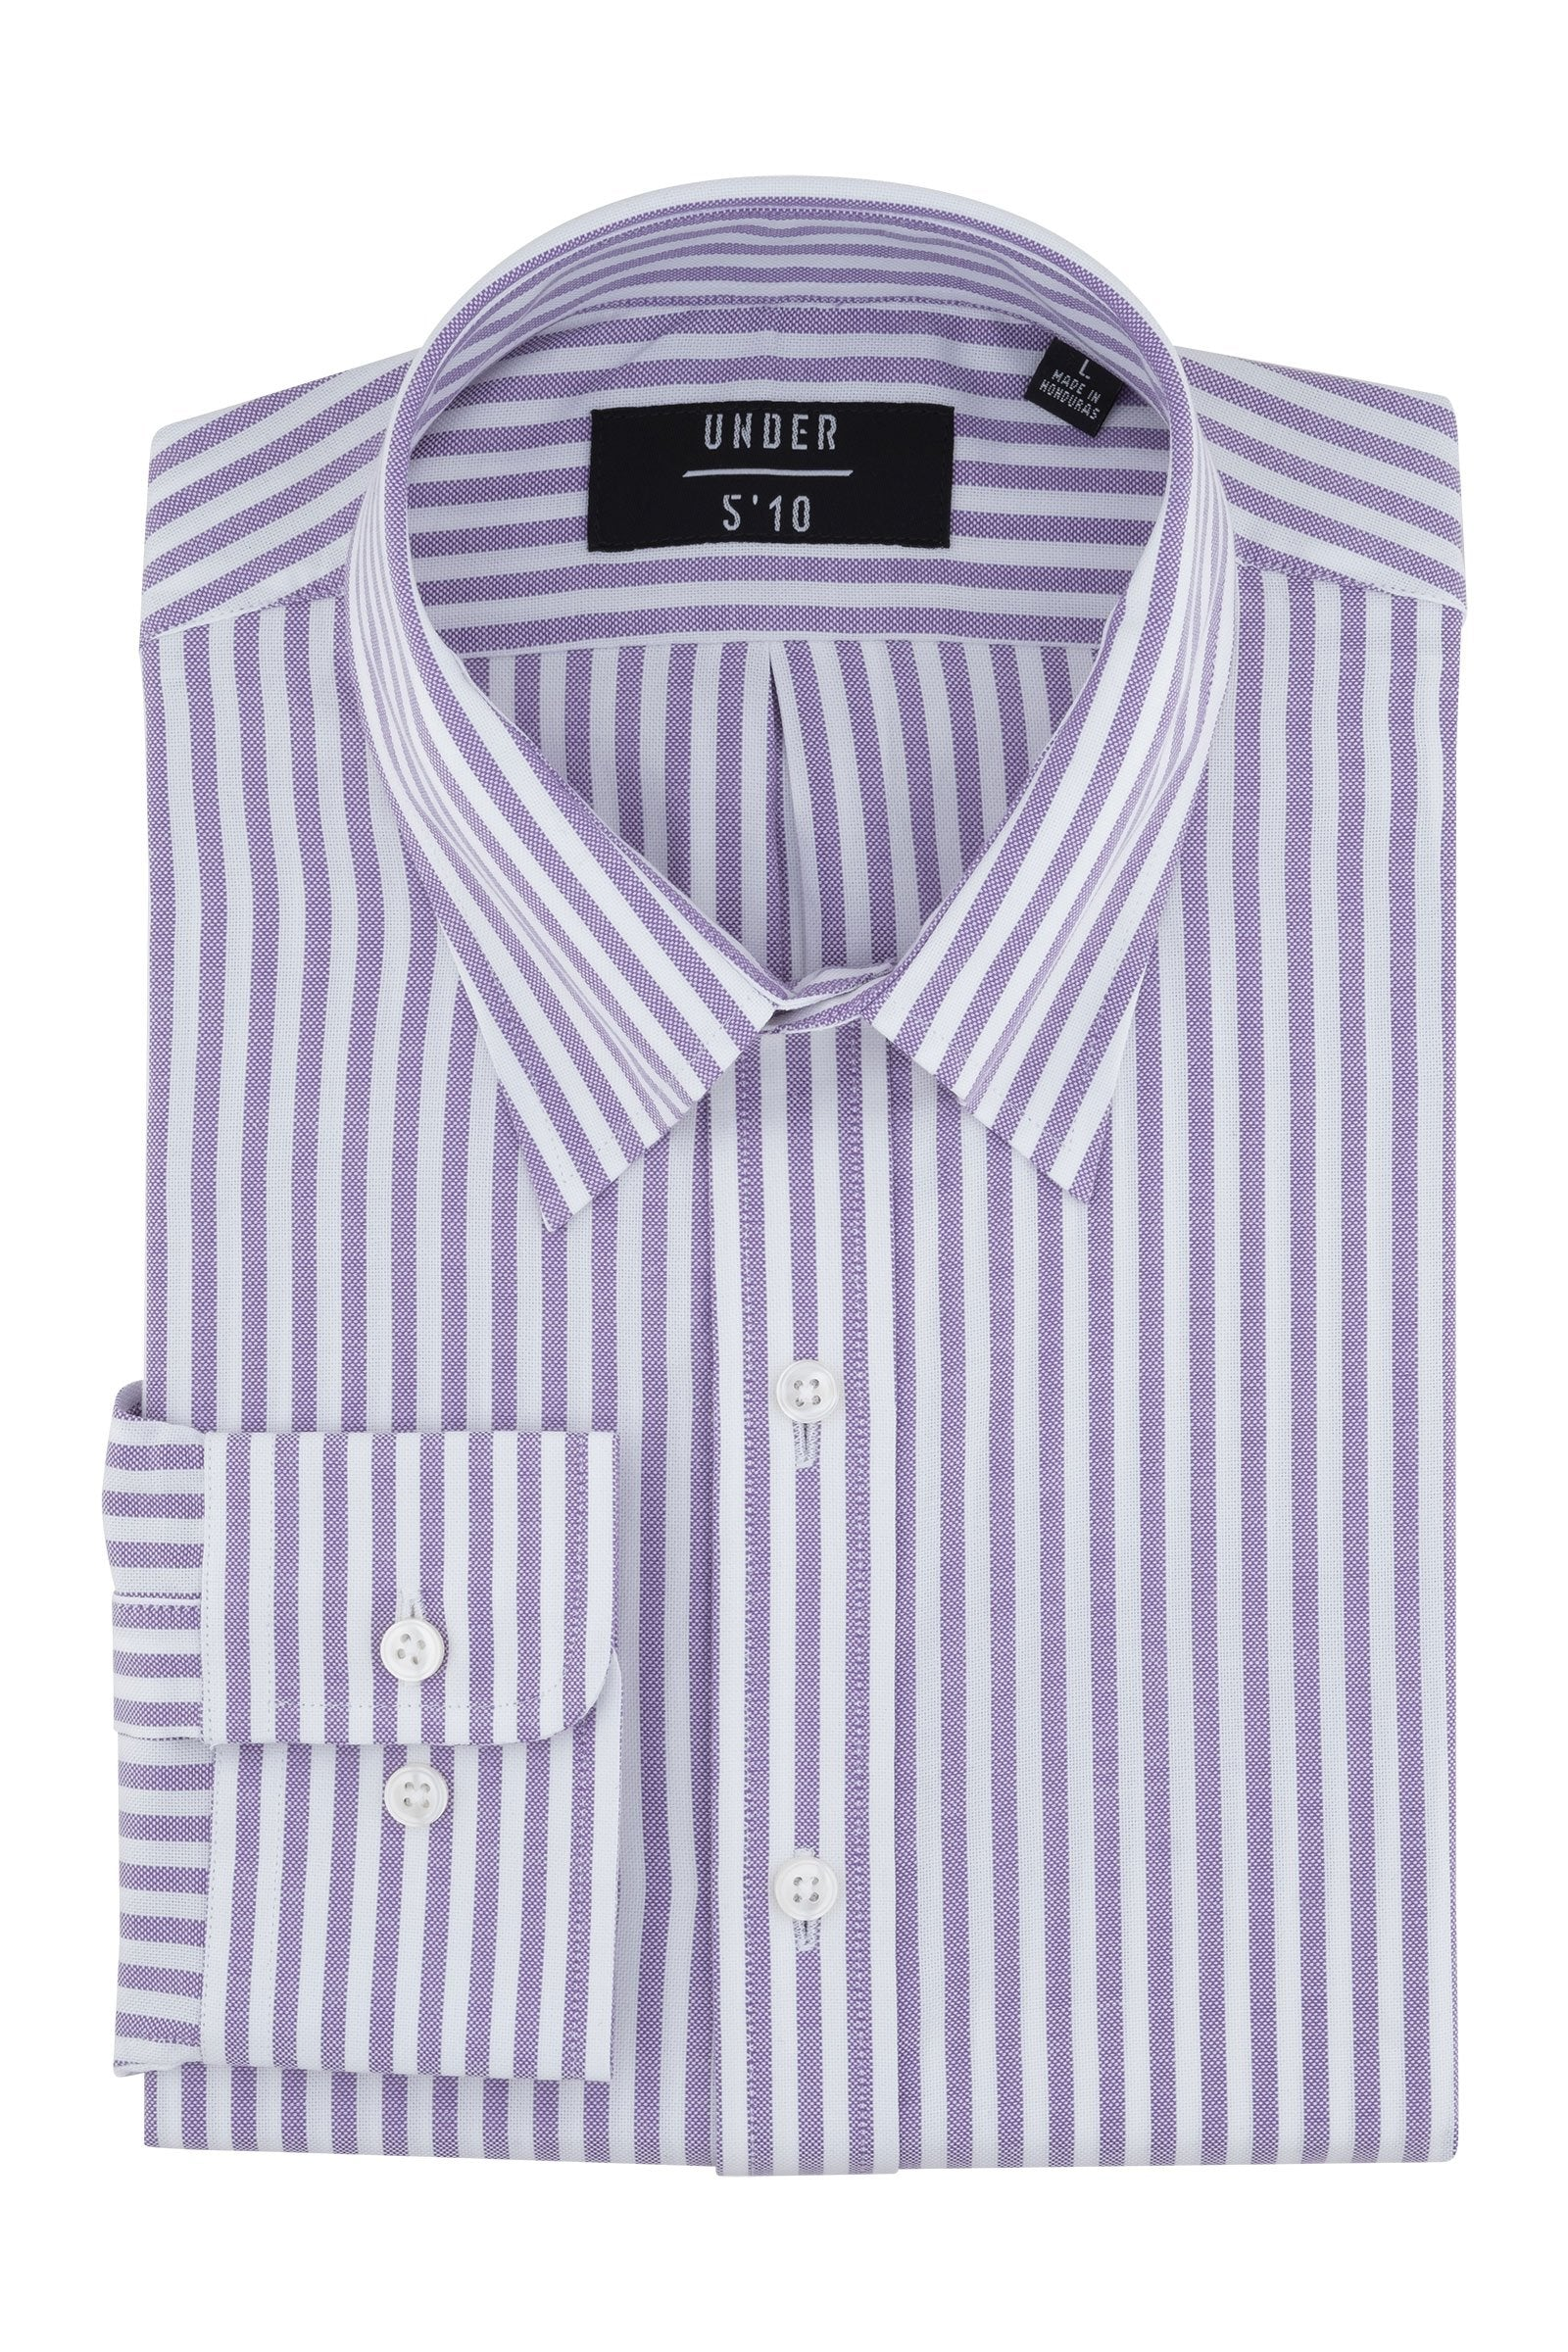 Purple Striped Oxford Button Down Shirt